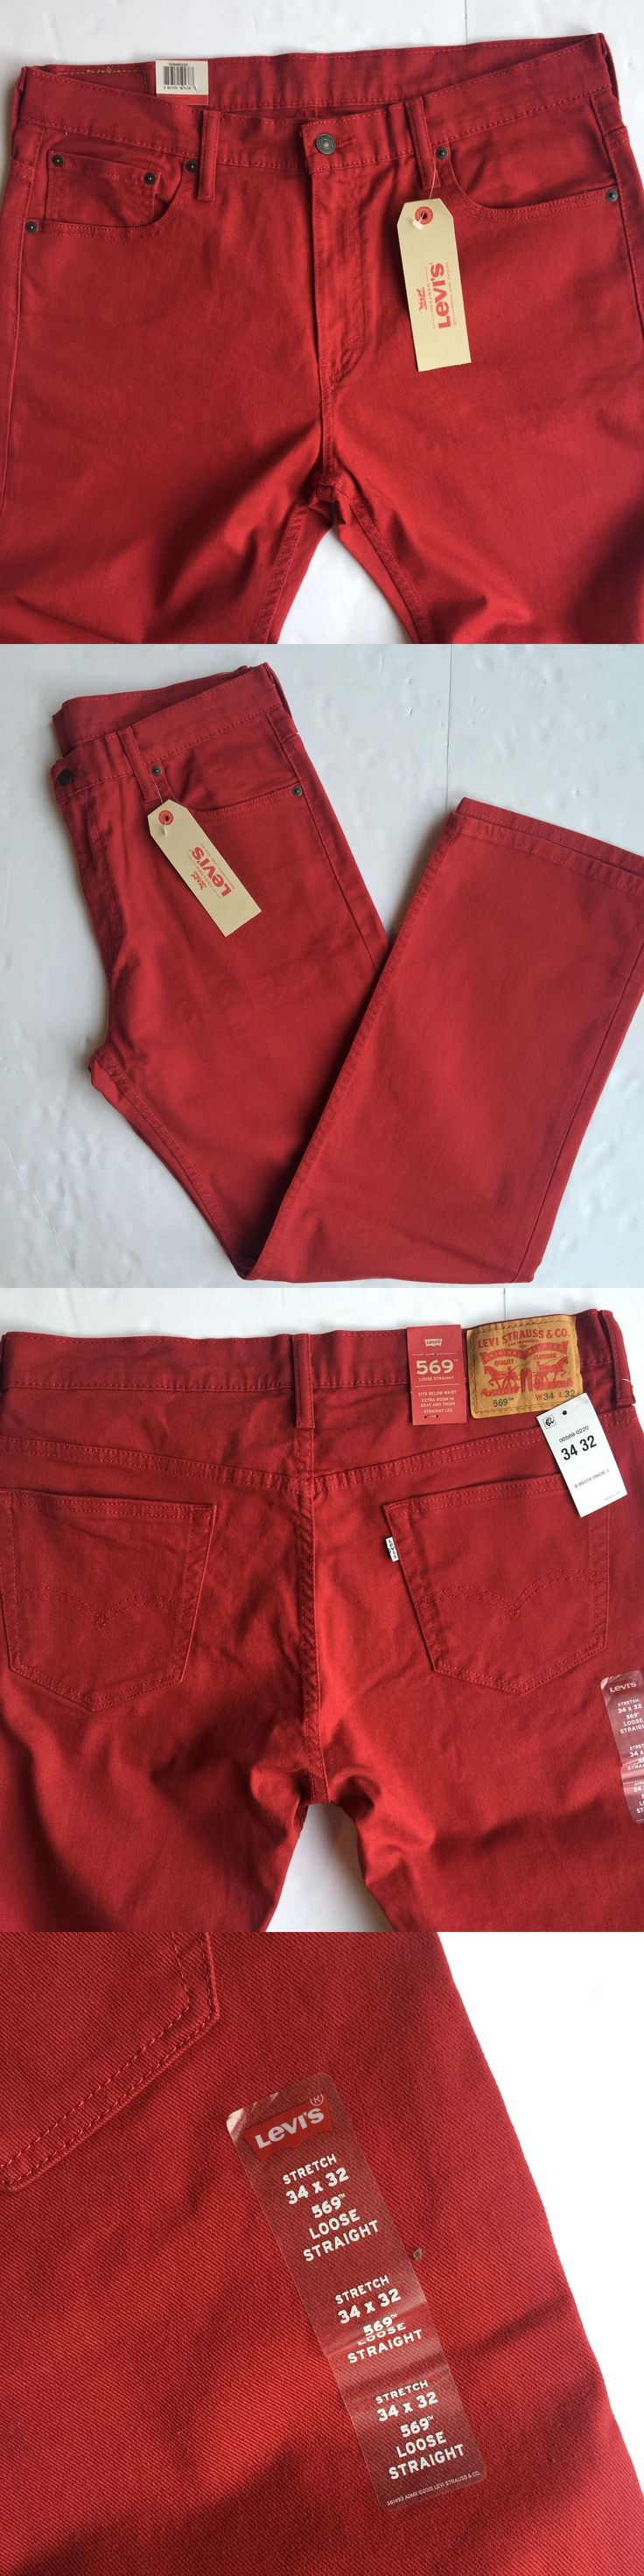 Jeans 11483: Levis 569 Loose Straight Stretch Red Denim Men S Jeans 34 X 32 New -> BUY IT NOW ONLY: $42.98 on eBay!